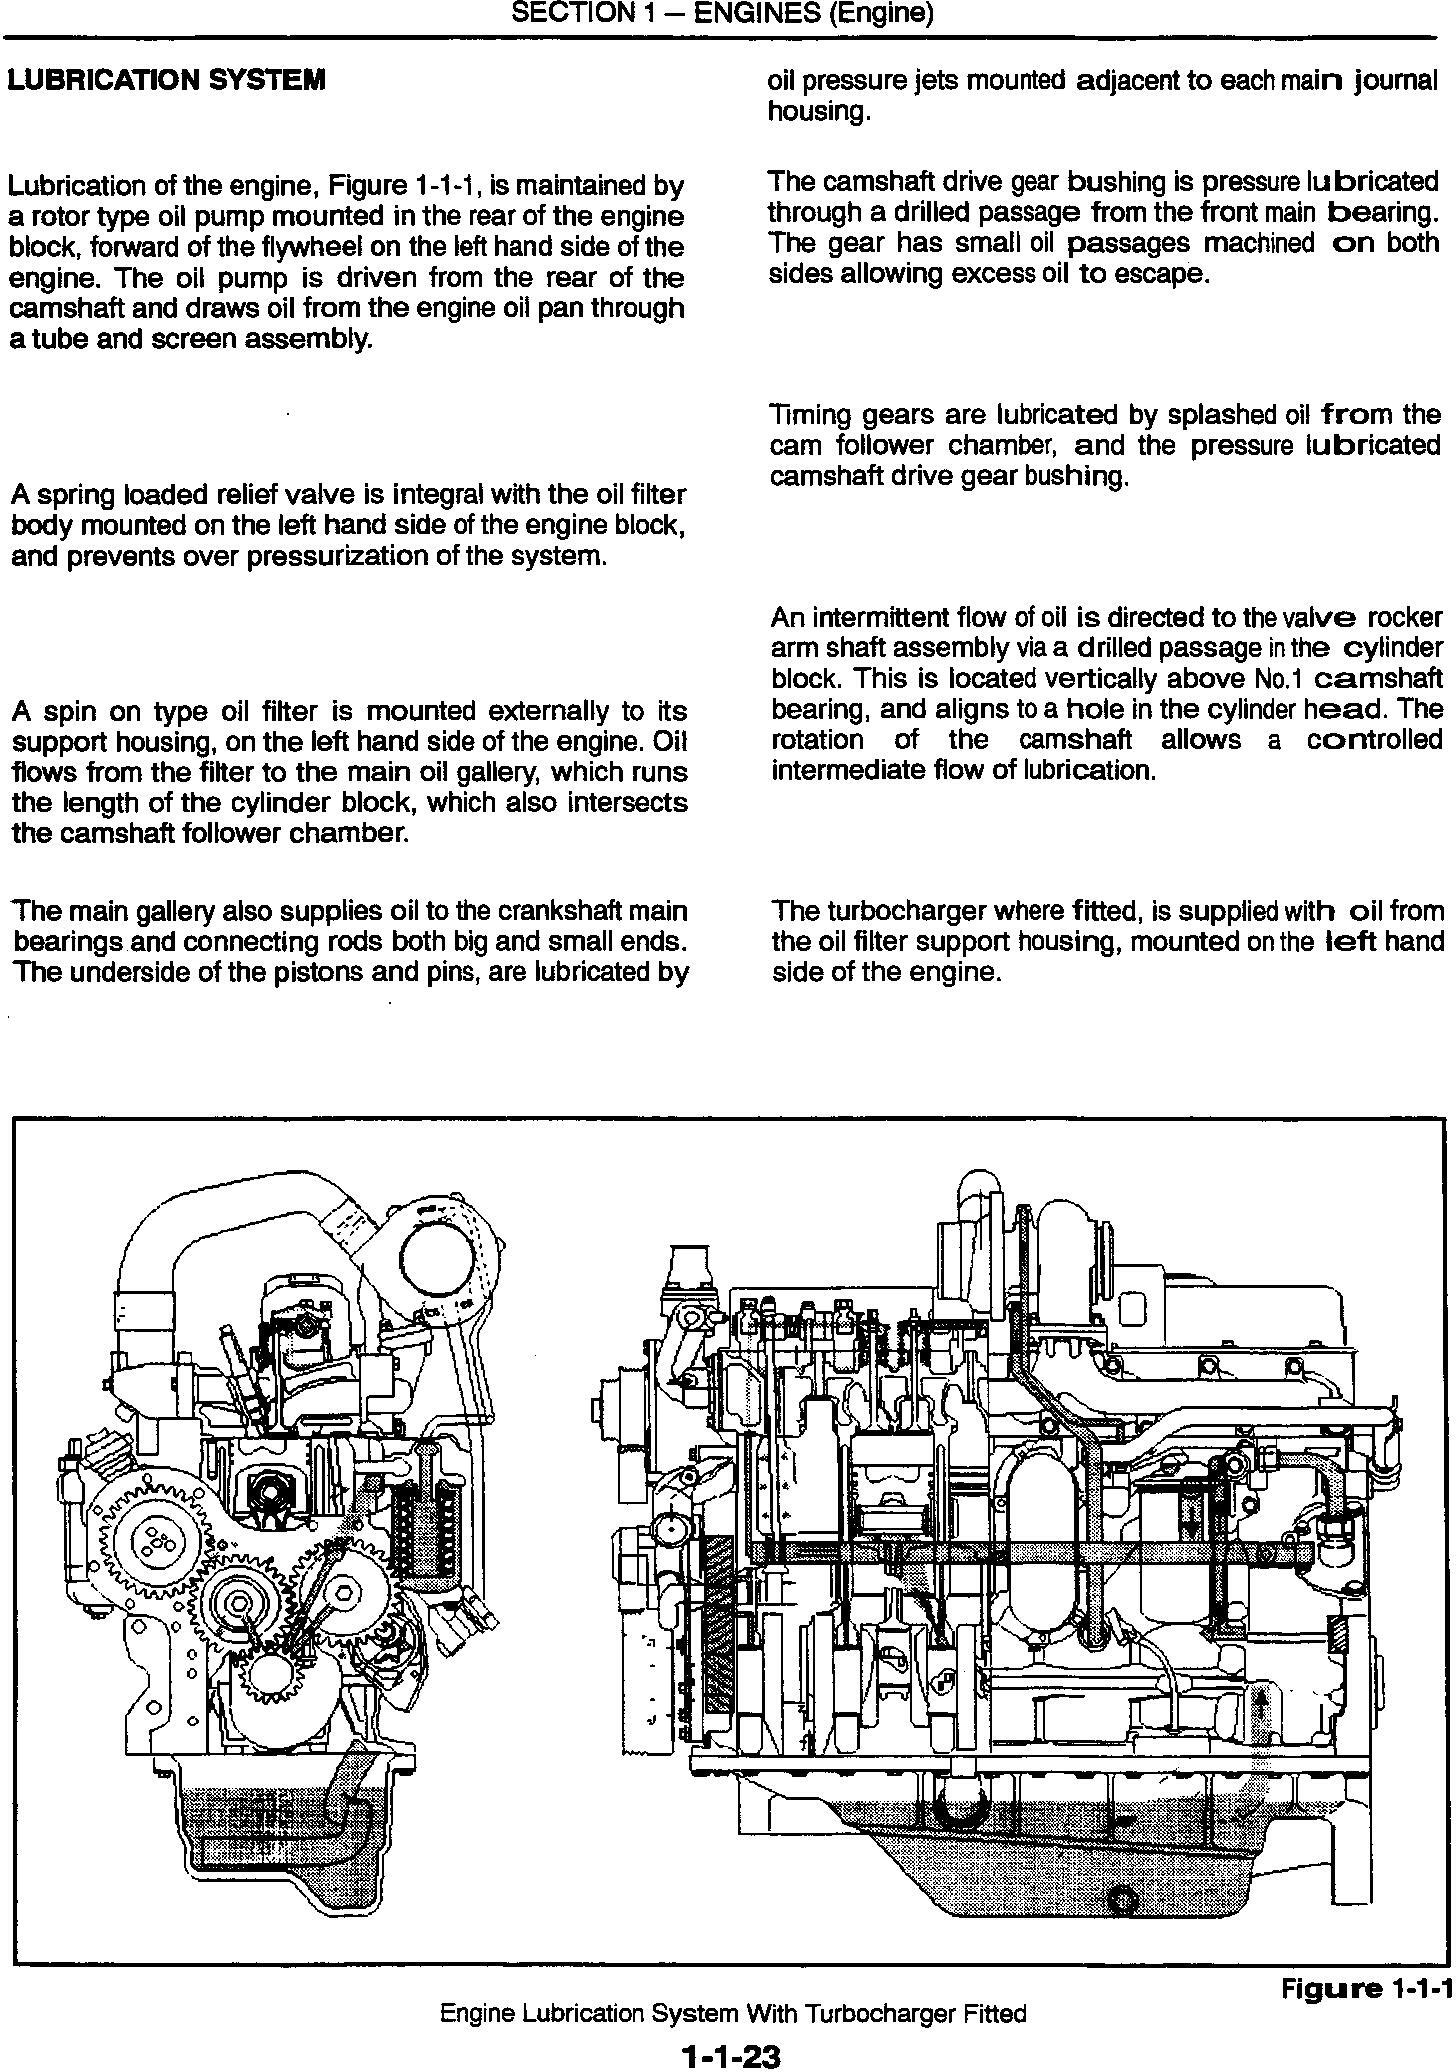 Ford New Holland / 8160, 8260, 8360, 8560 Tractors Complete Service Manual - 1